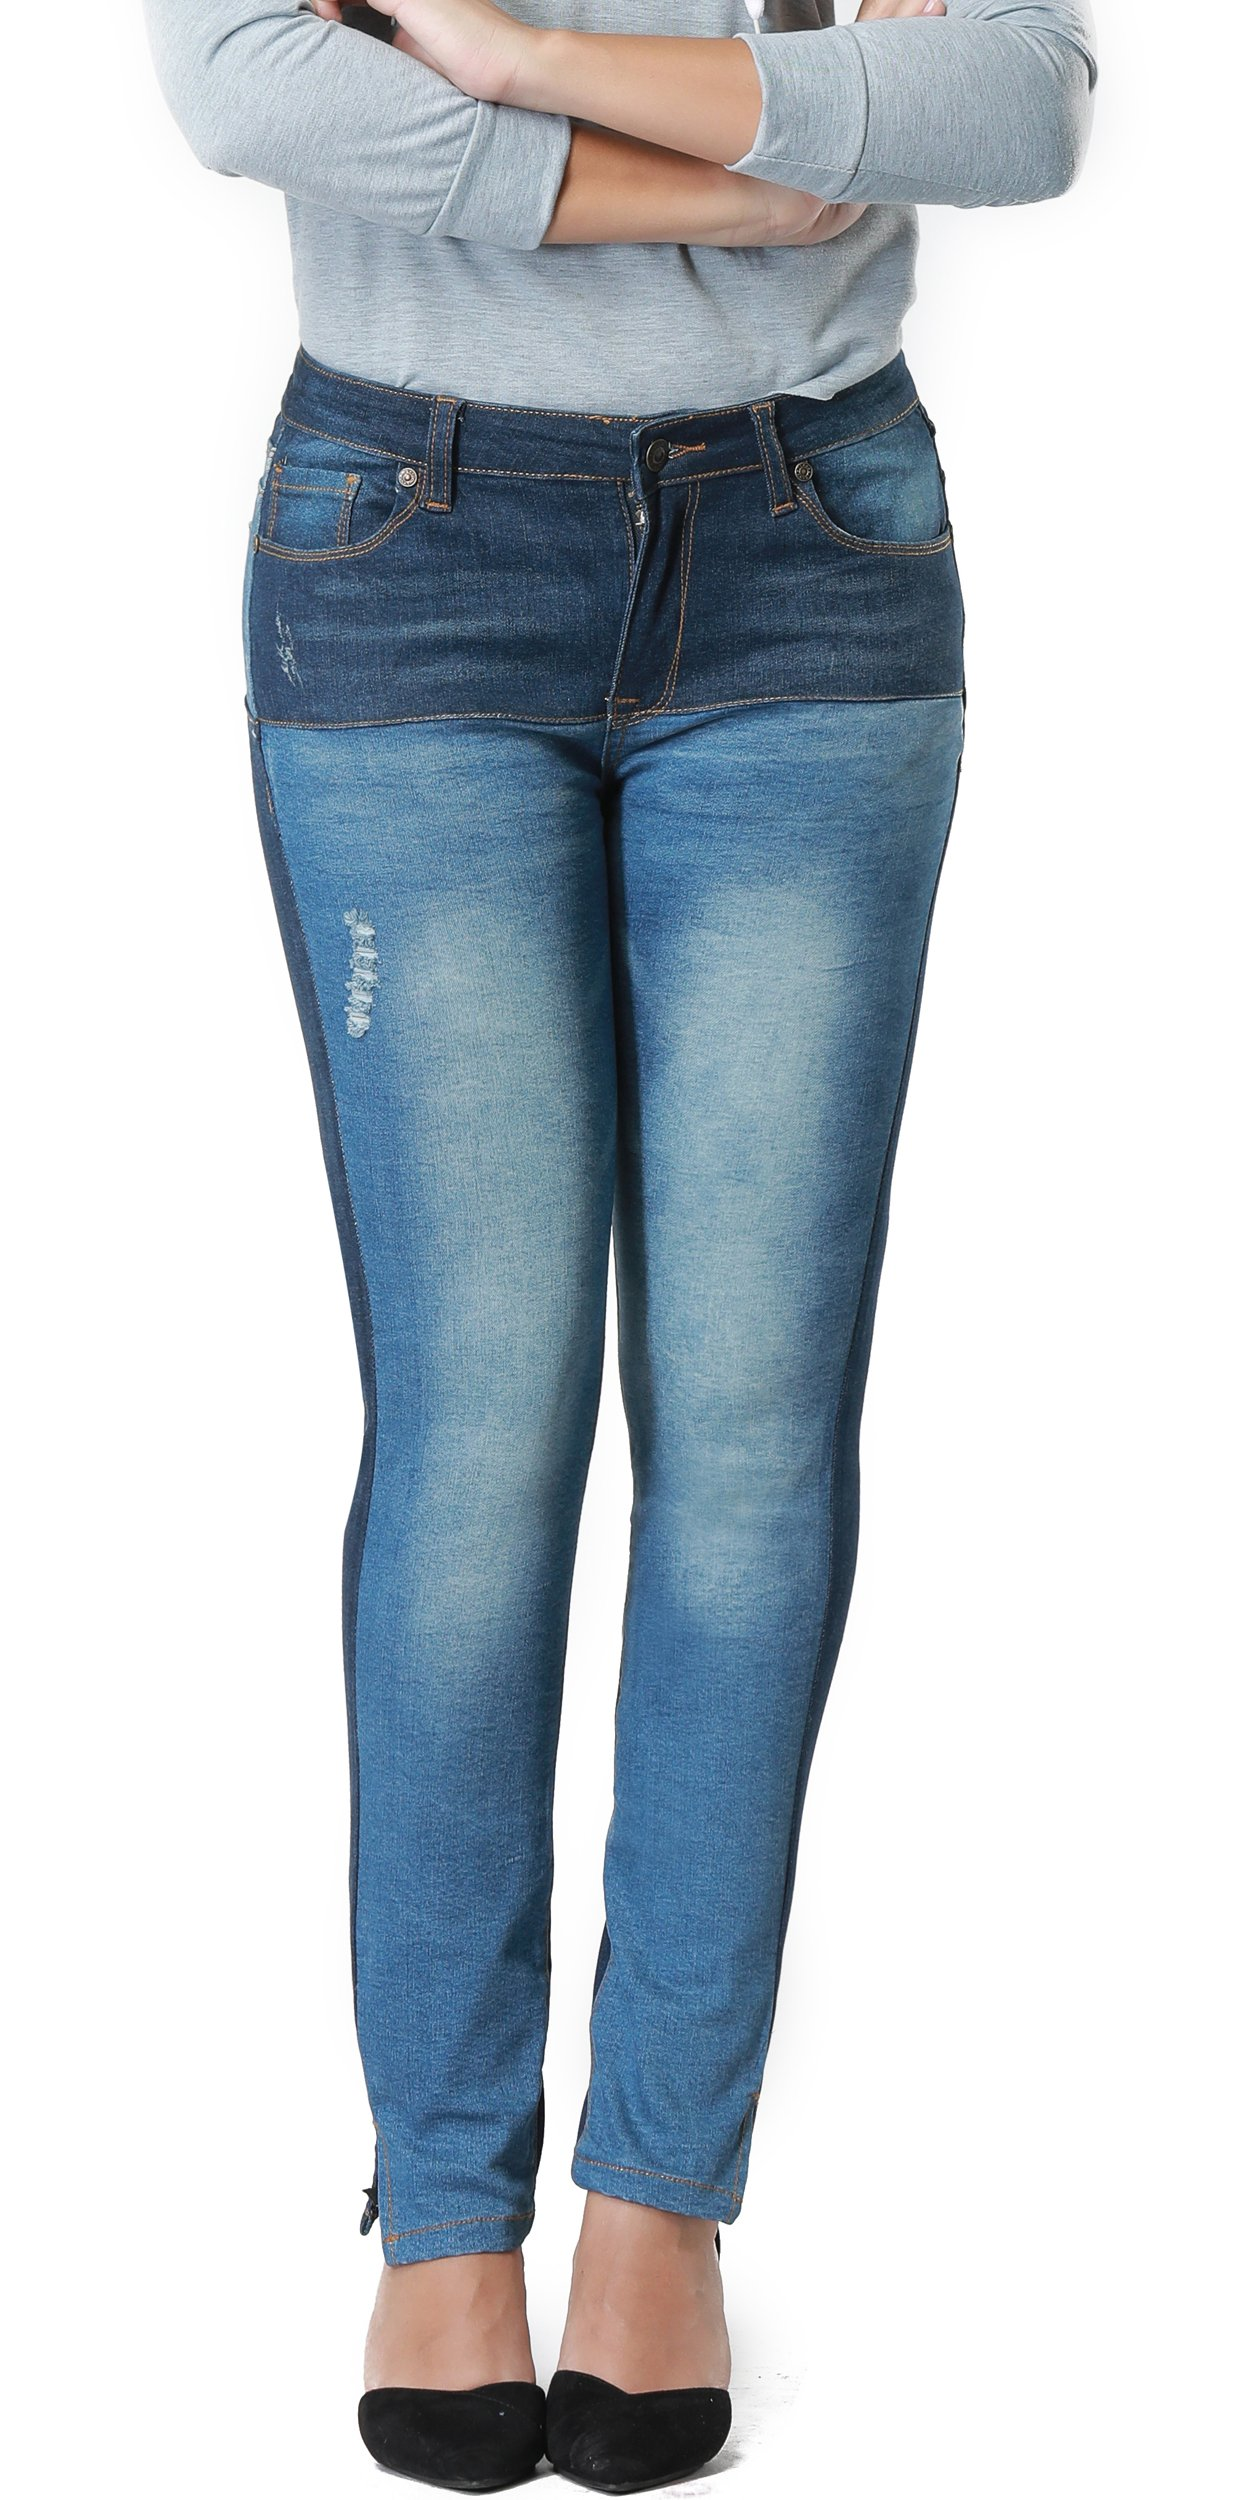 Women's Hight Waisted Butt Lift Stretch Ripped Skinny Jeans Distressed Denim Pants (US 16, Blue 25)